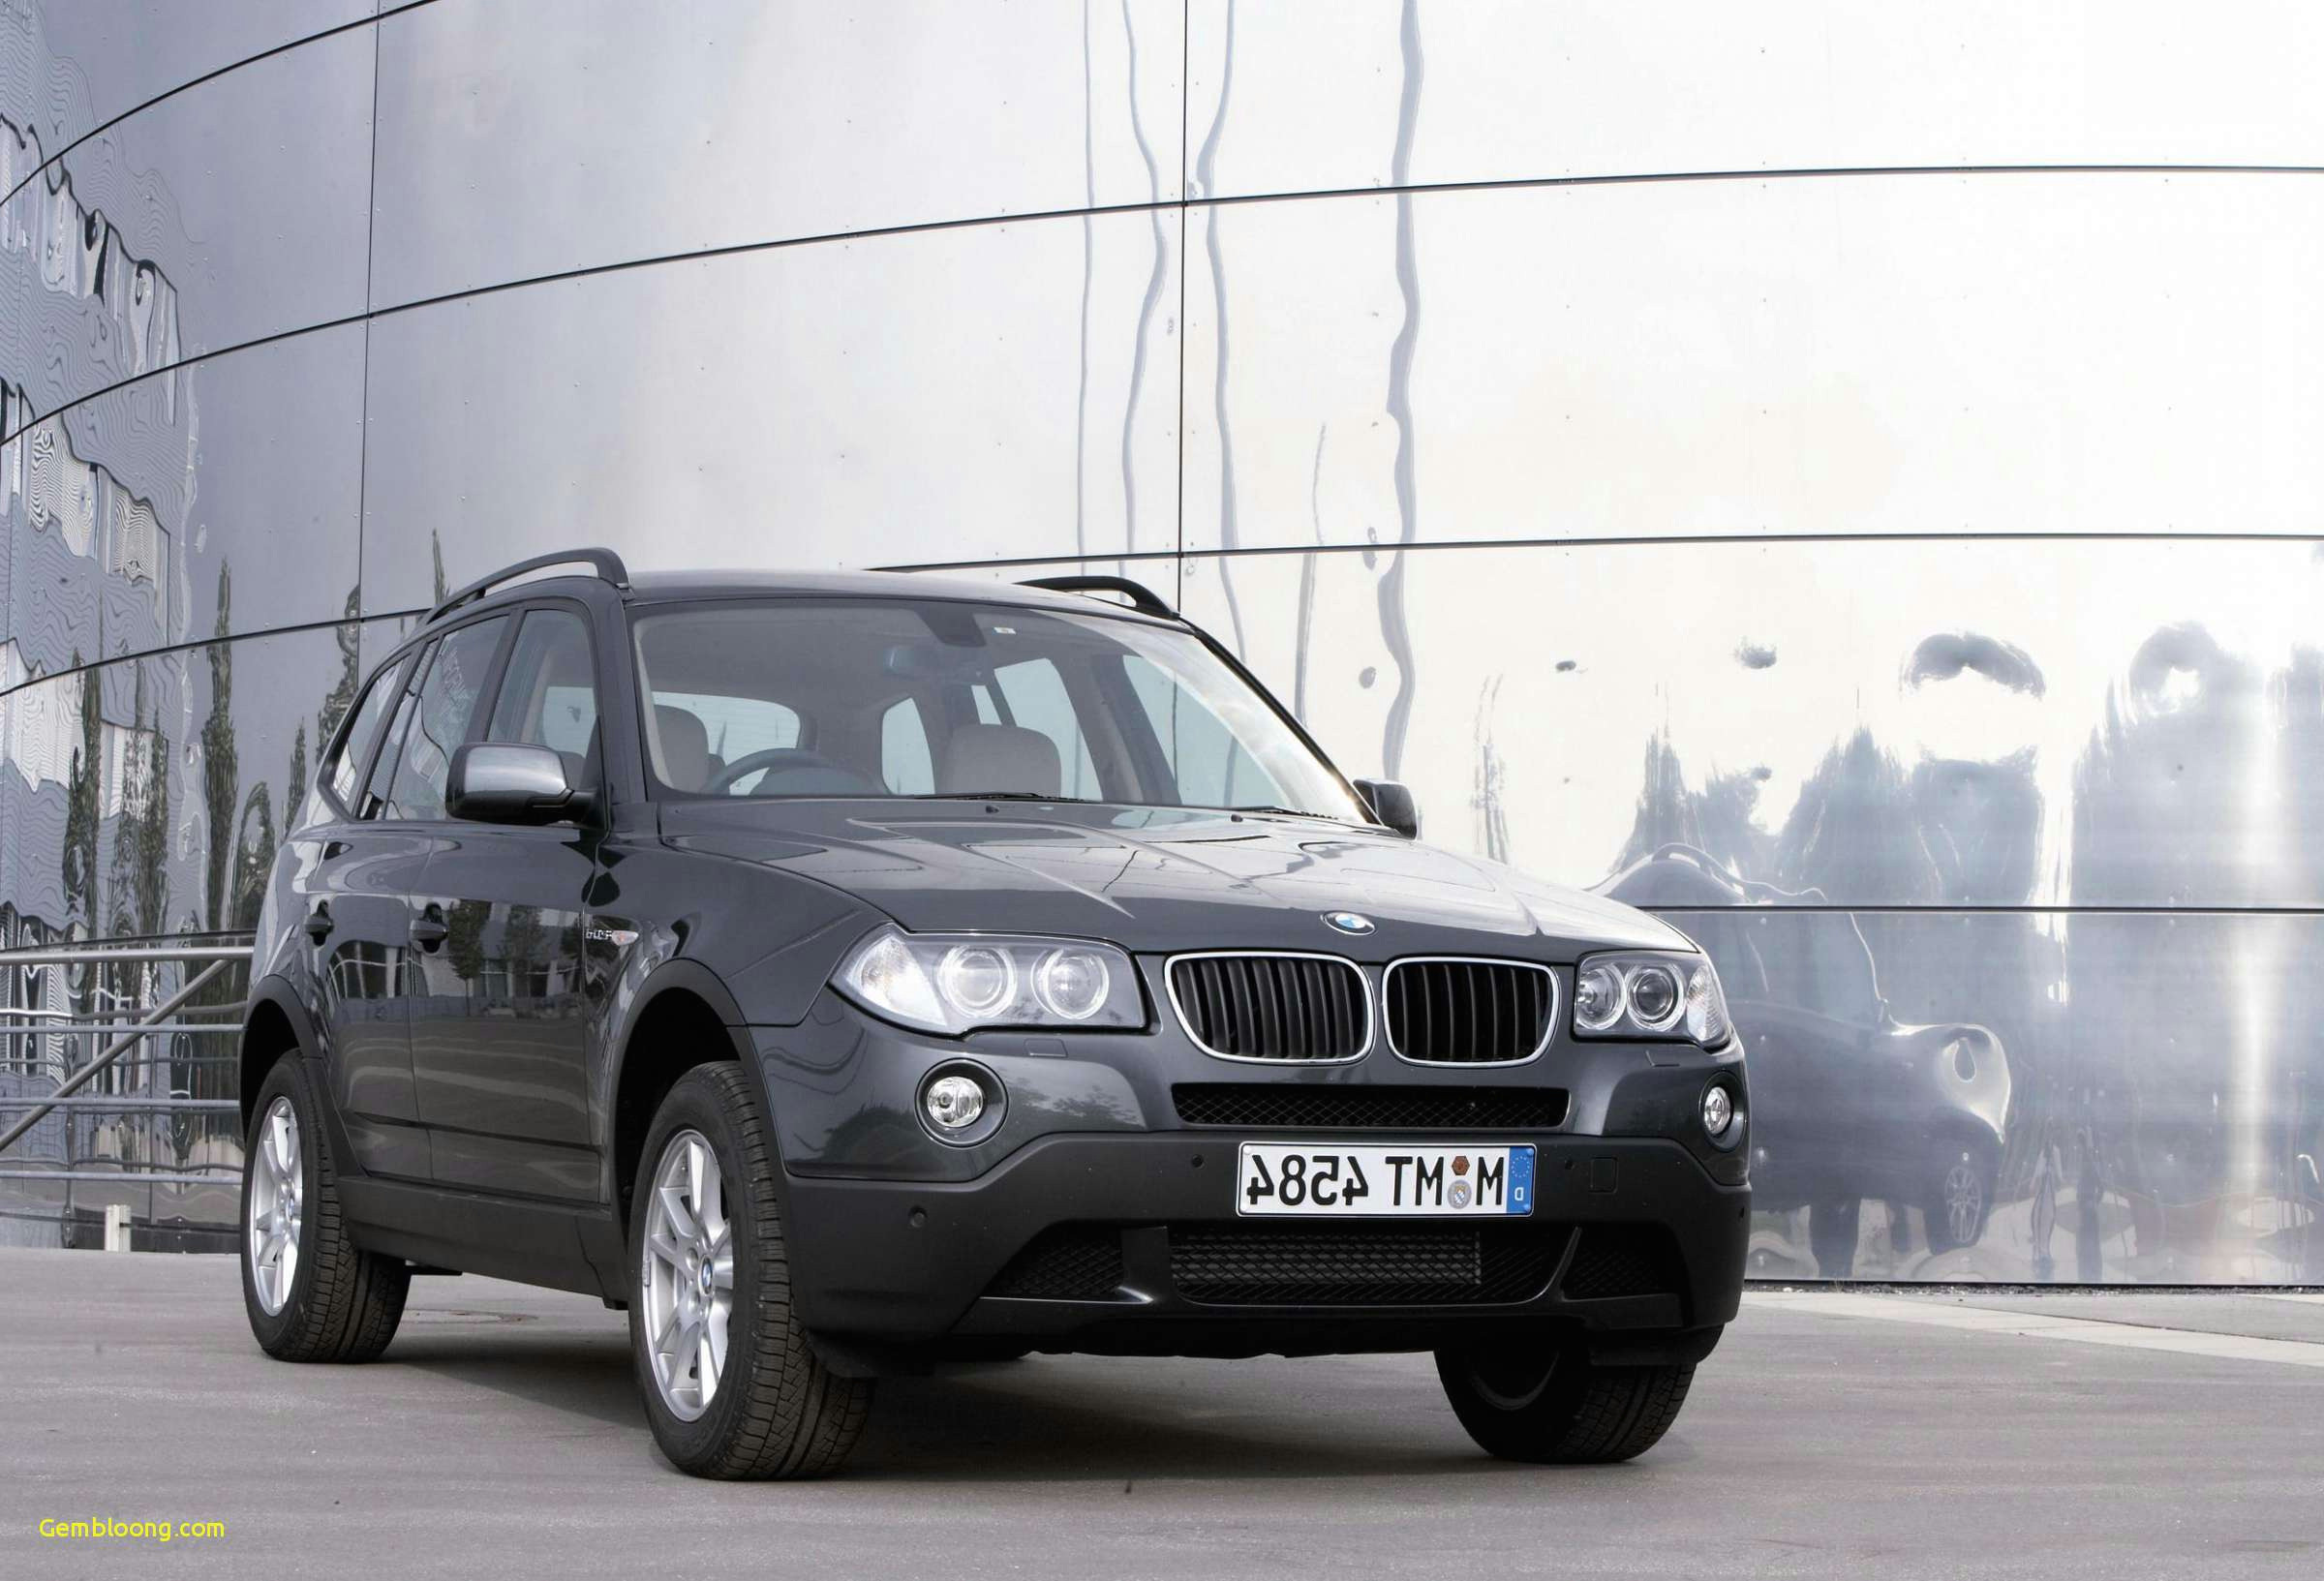 cars that are easy to draw top bmw i5 specs 2008 bmw x3 2 0d new